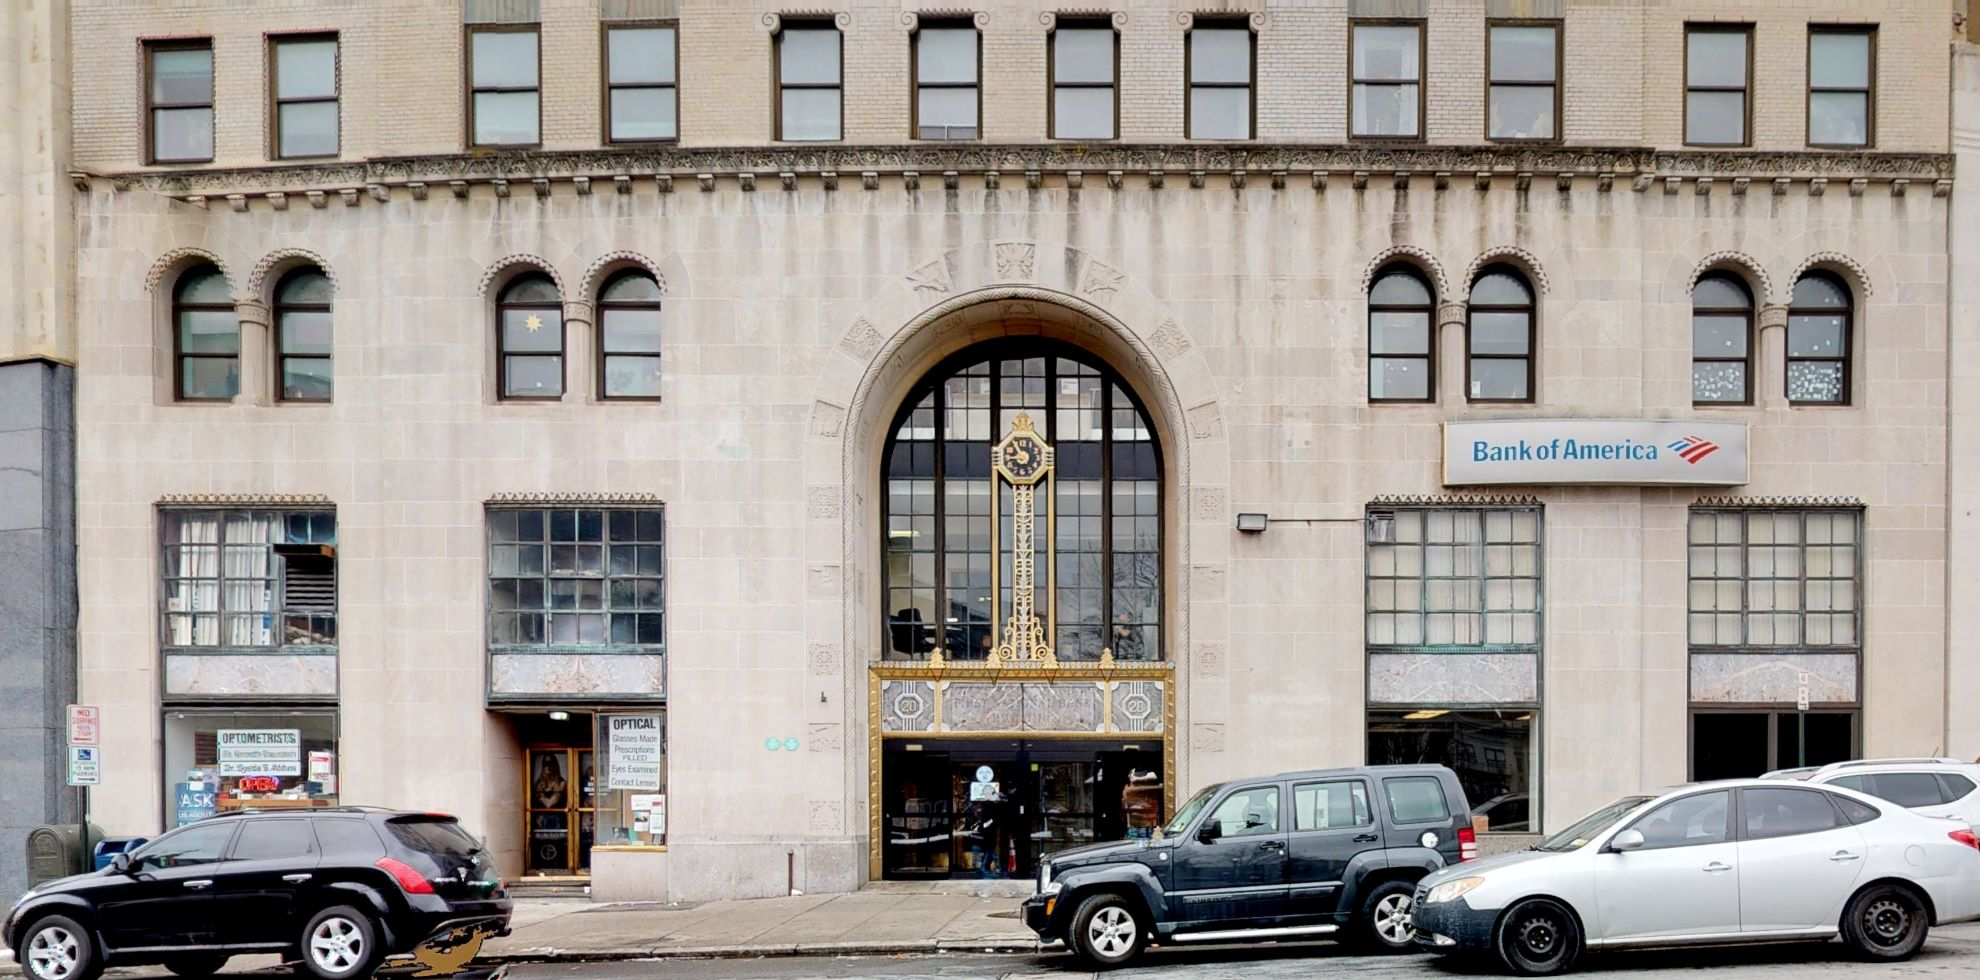 Bank of America financial center with walk-up ATM | 20 S Broadway, Yonkers, NY 10701